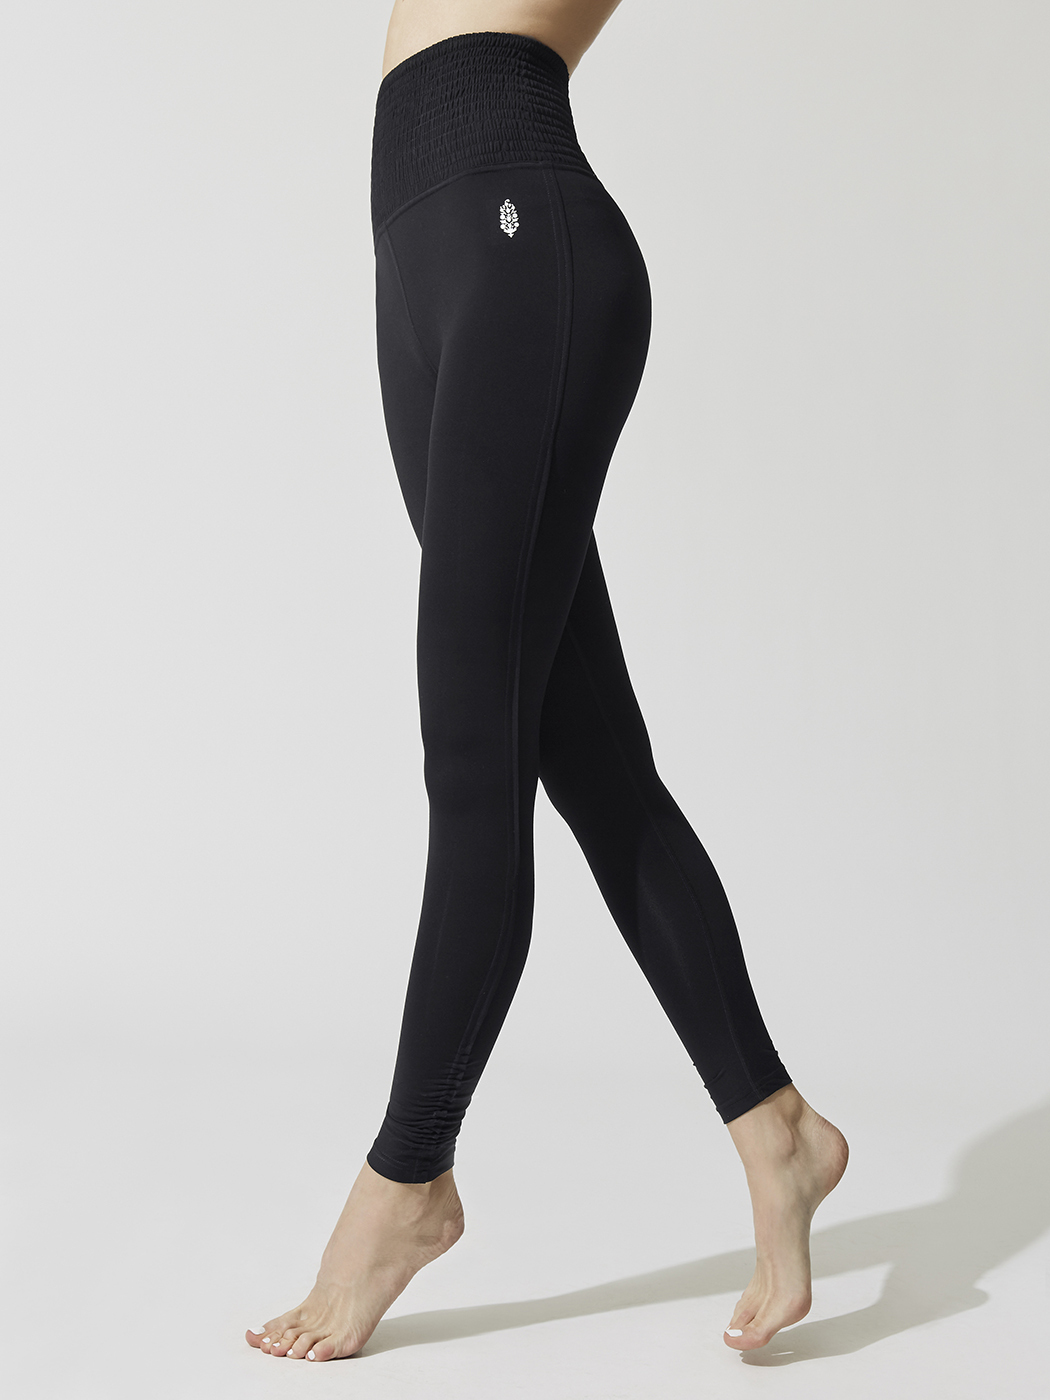 Women Smock It To Me Baby Legging in Black, Free People Movement